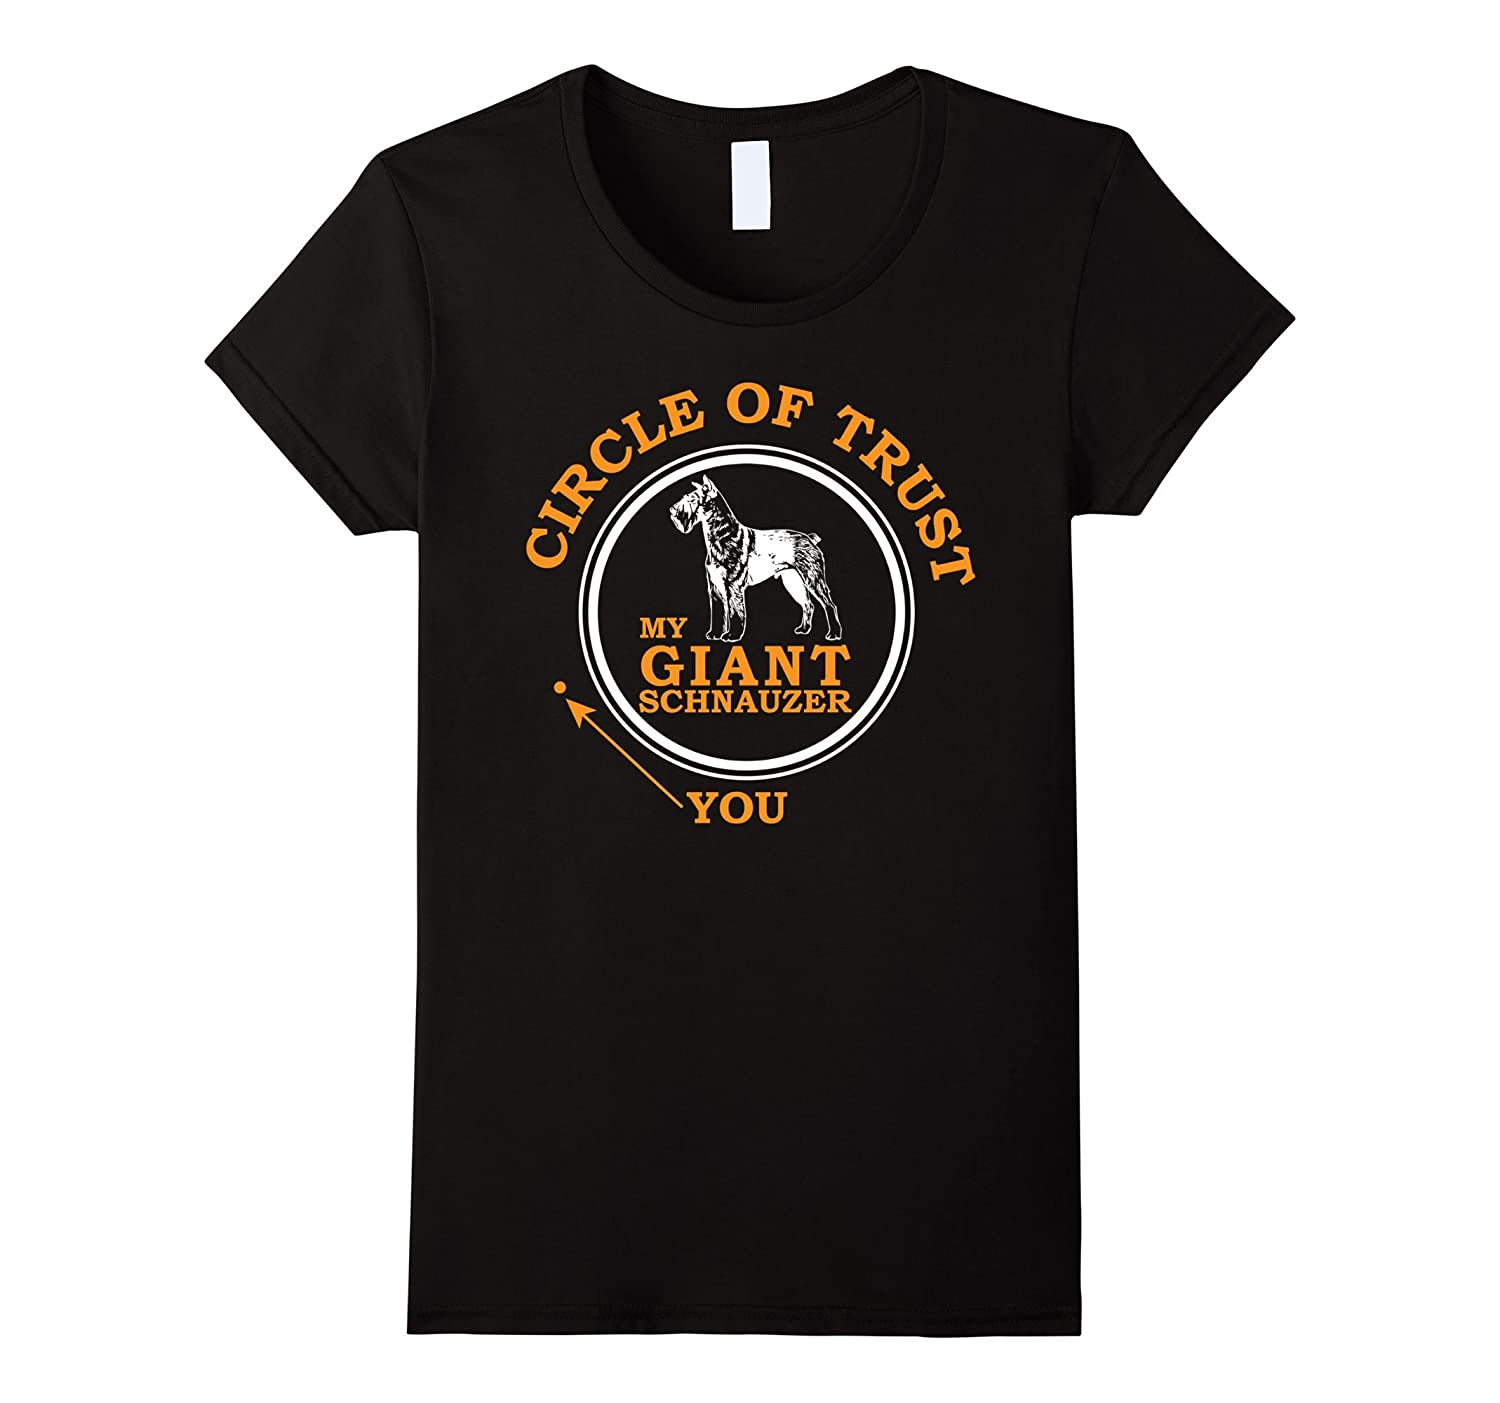 Giant Schnauzer Circle Of Trust T-Shirt